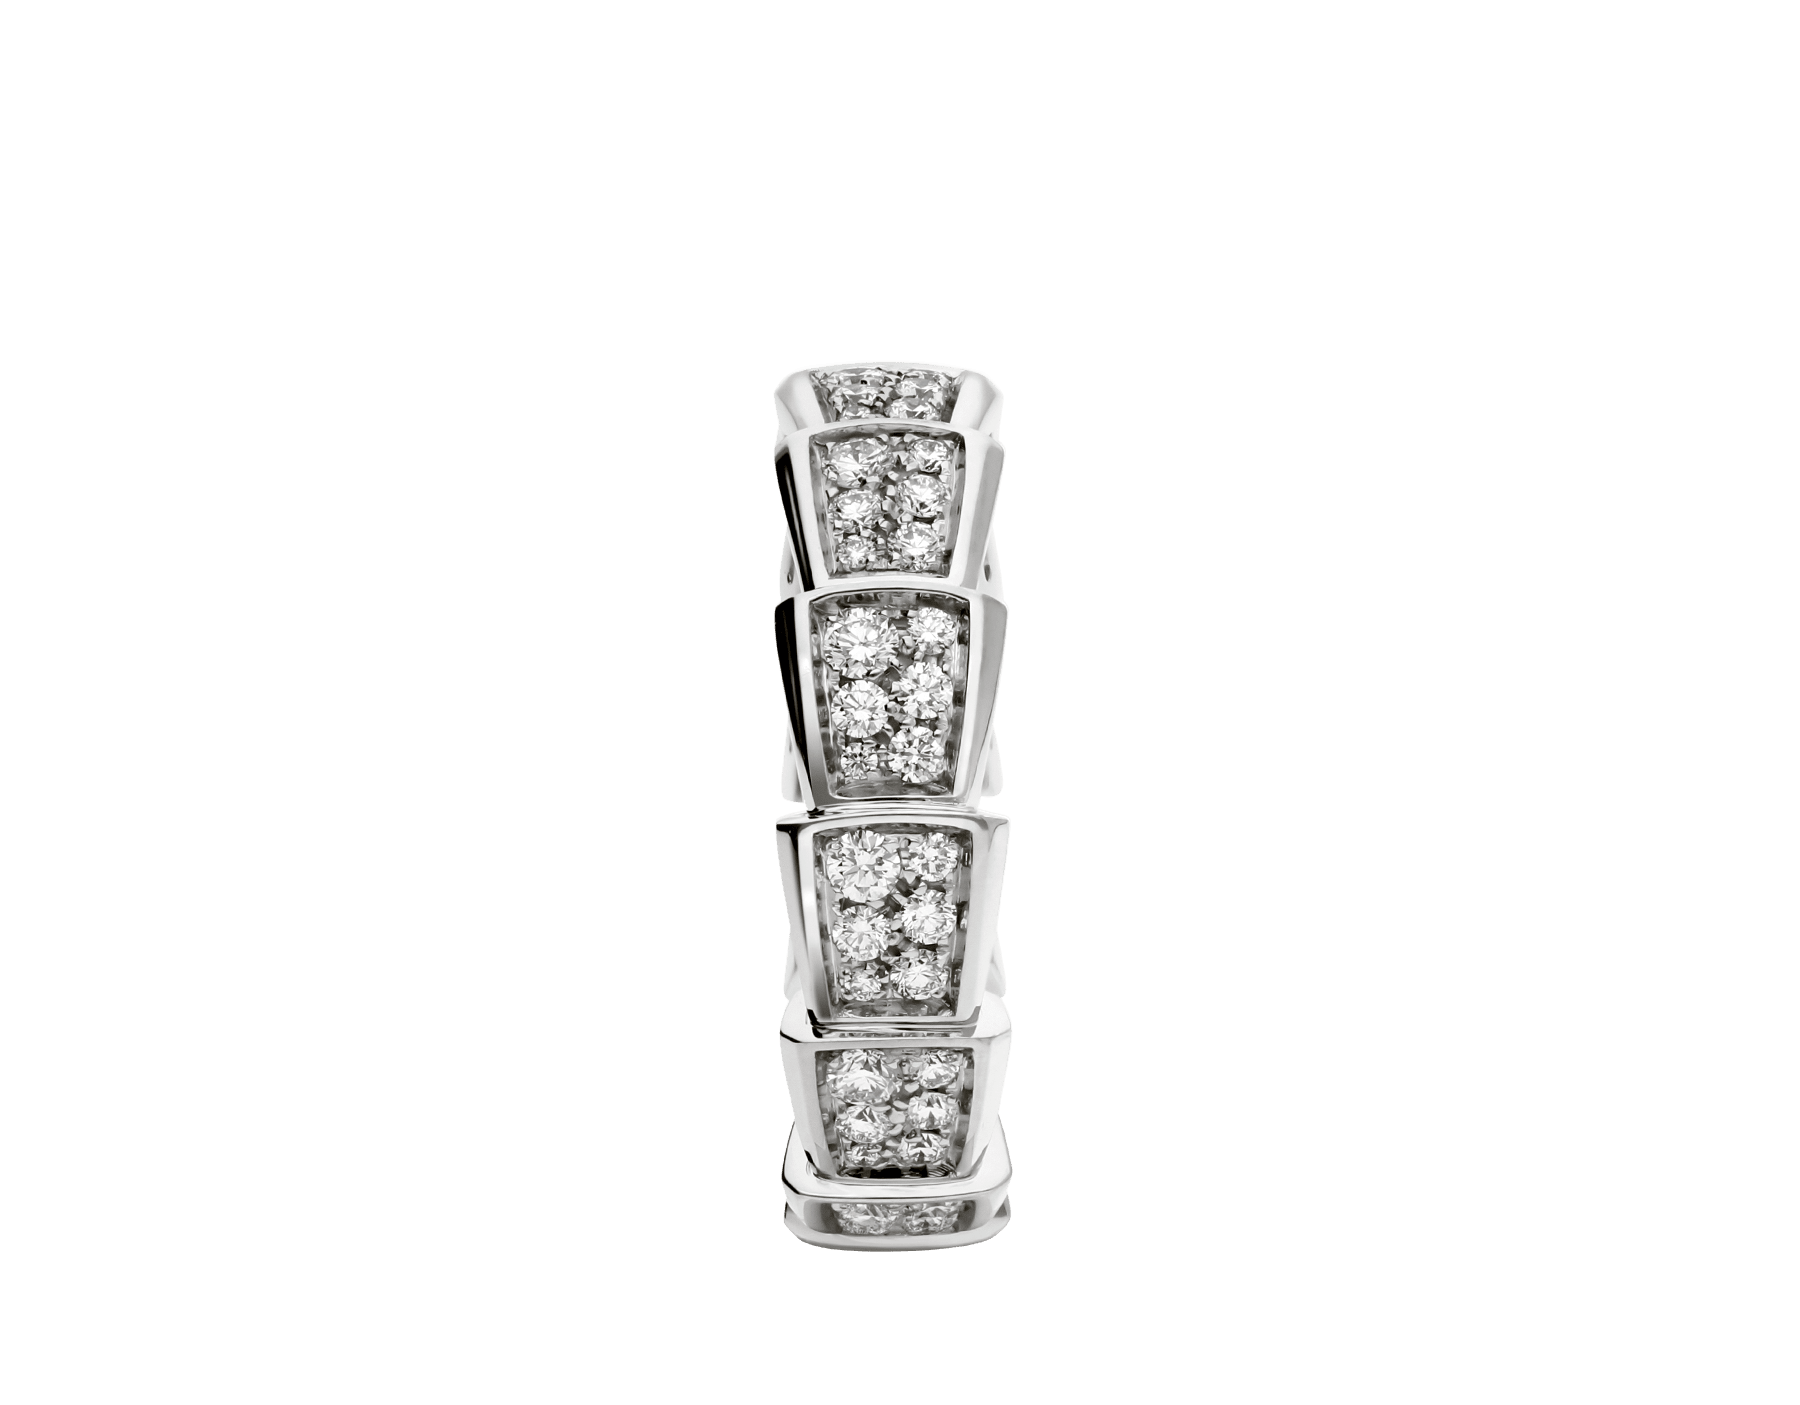 Serpenti Viper band ring in 18 kt white gold, set with full pavé diamonds. AN857940 image 2